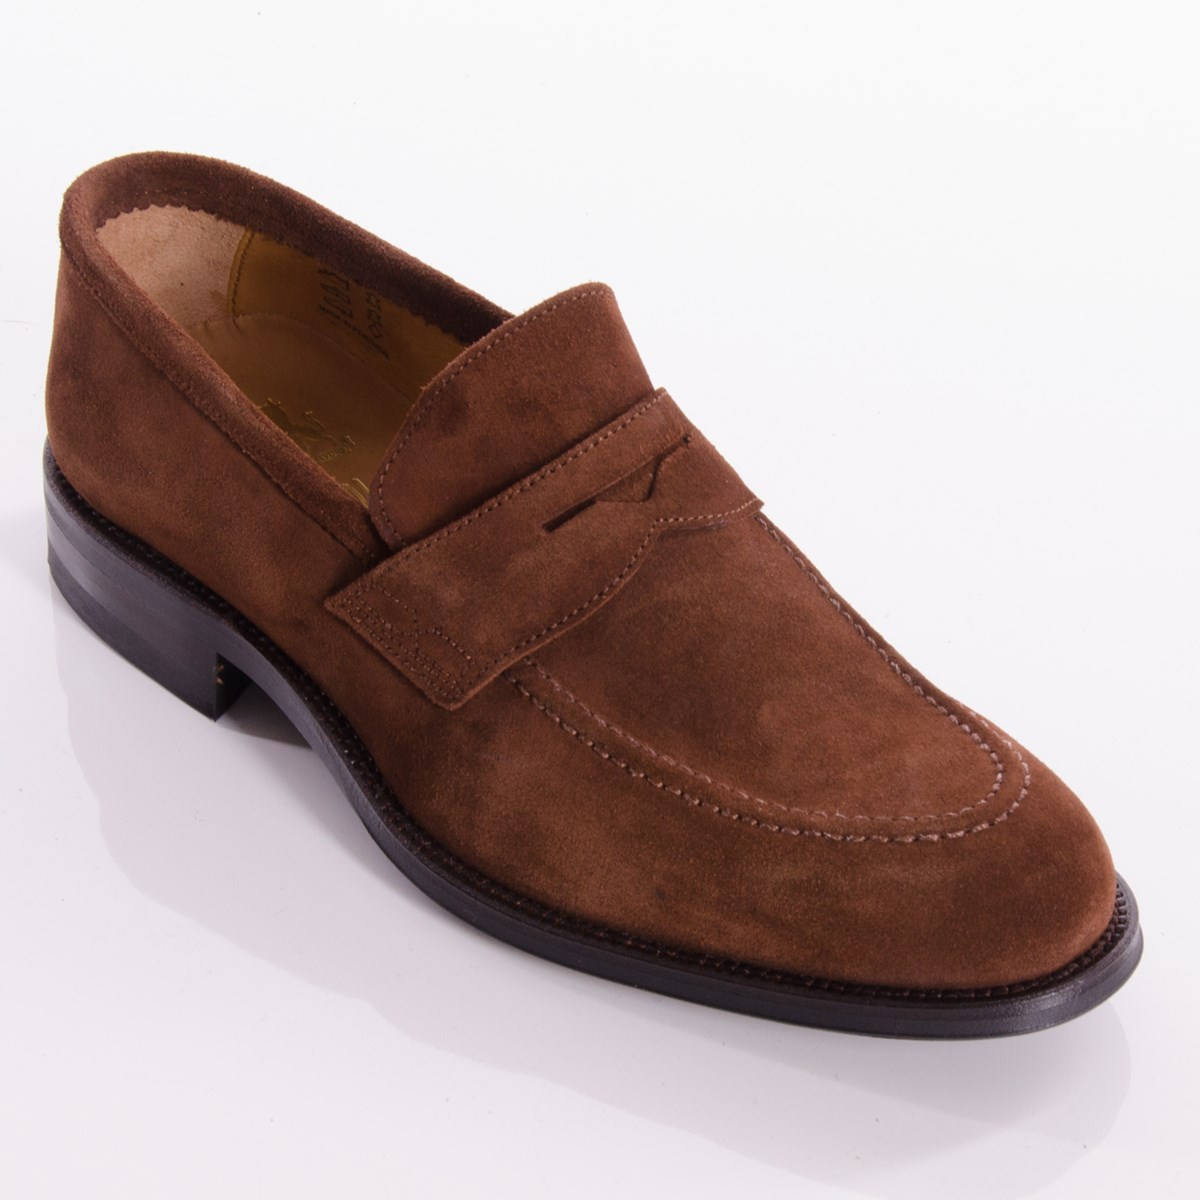 e46ff902ea7a9 Stamford Brown Suede Loafers By John White - The Kilt Store